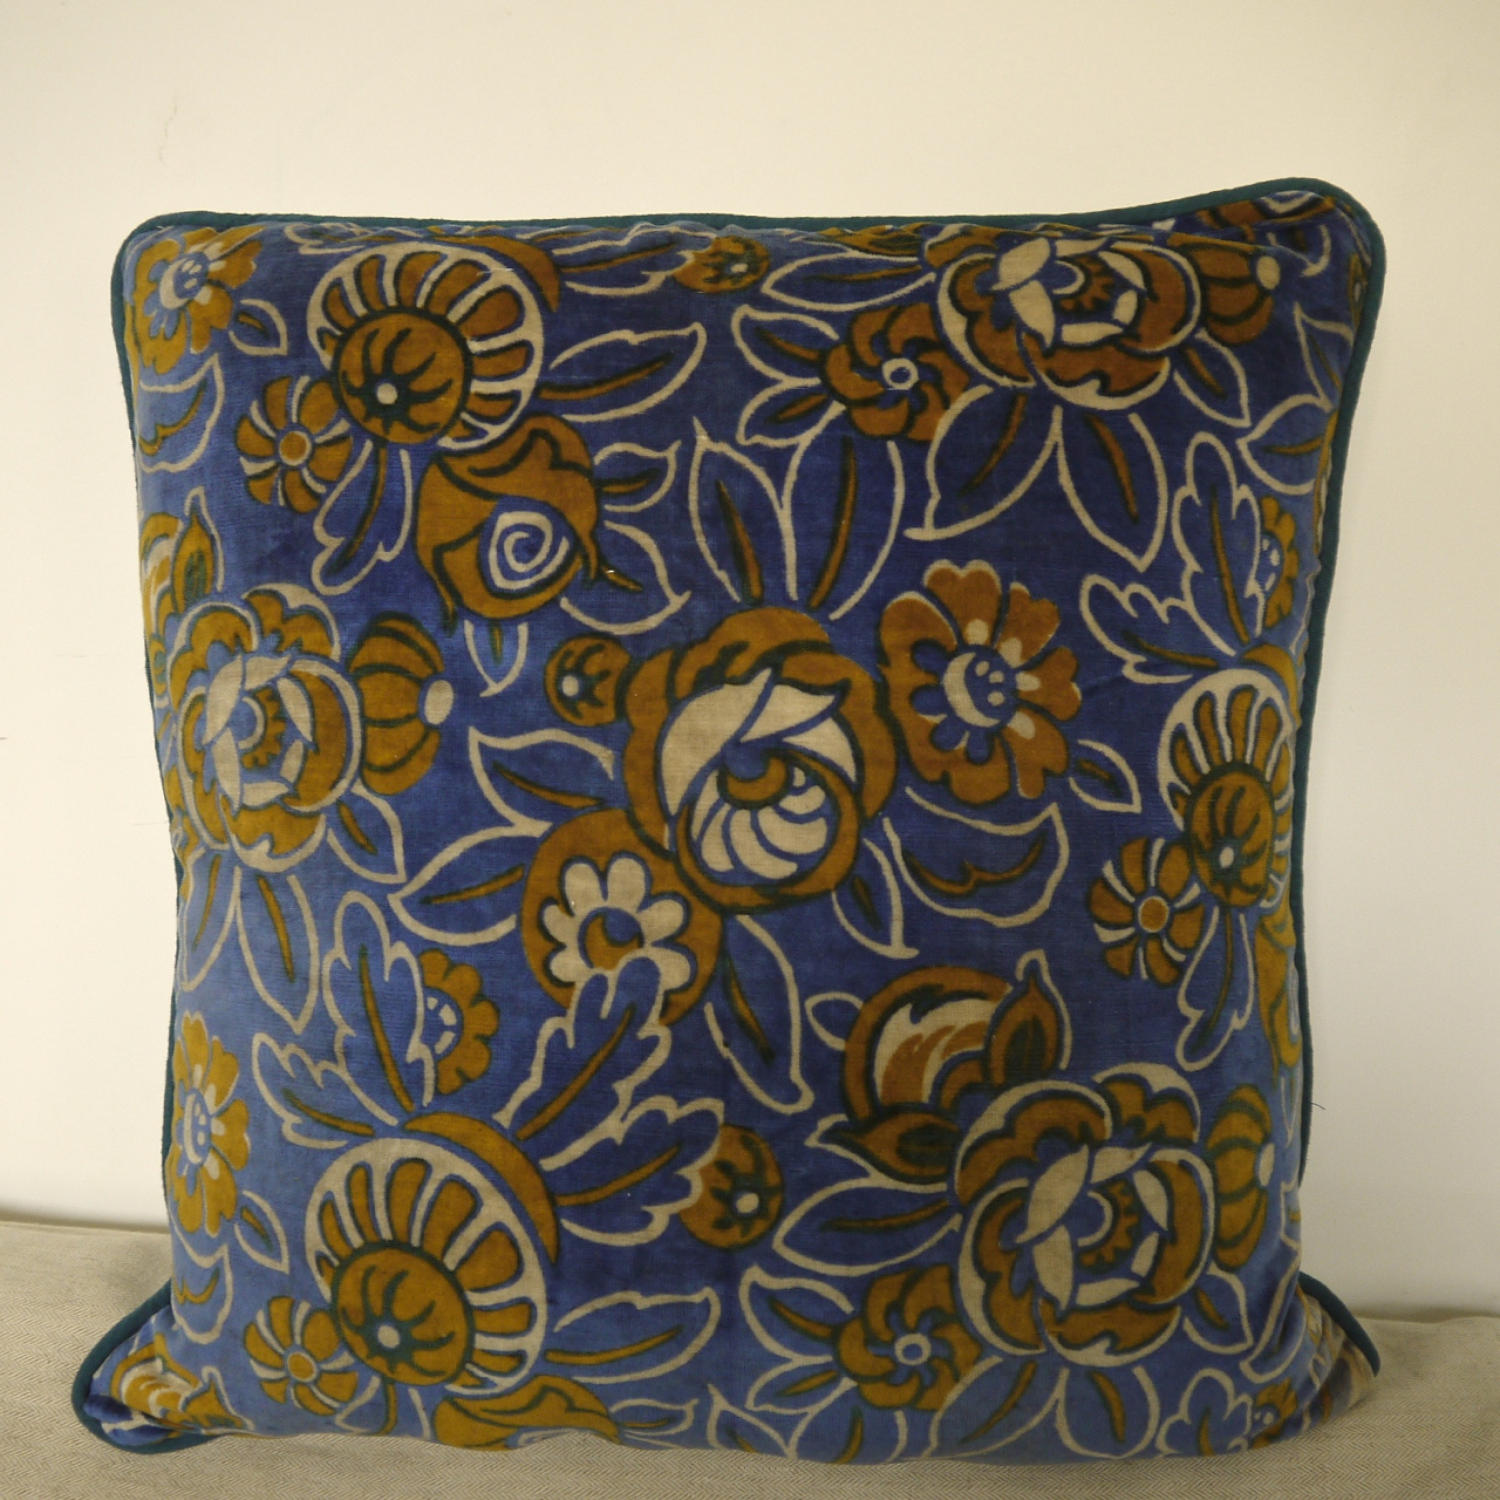 French c.1920s Art Deco cotton velvet cushion